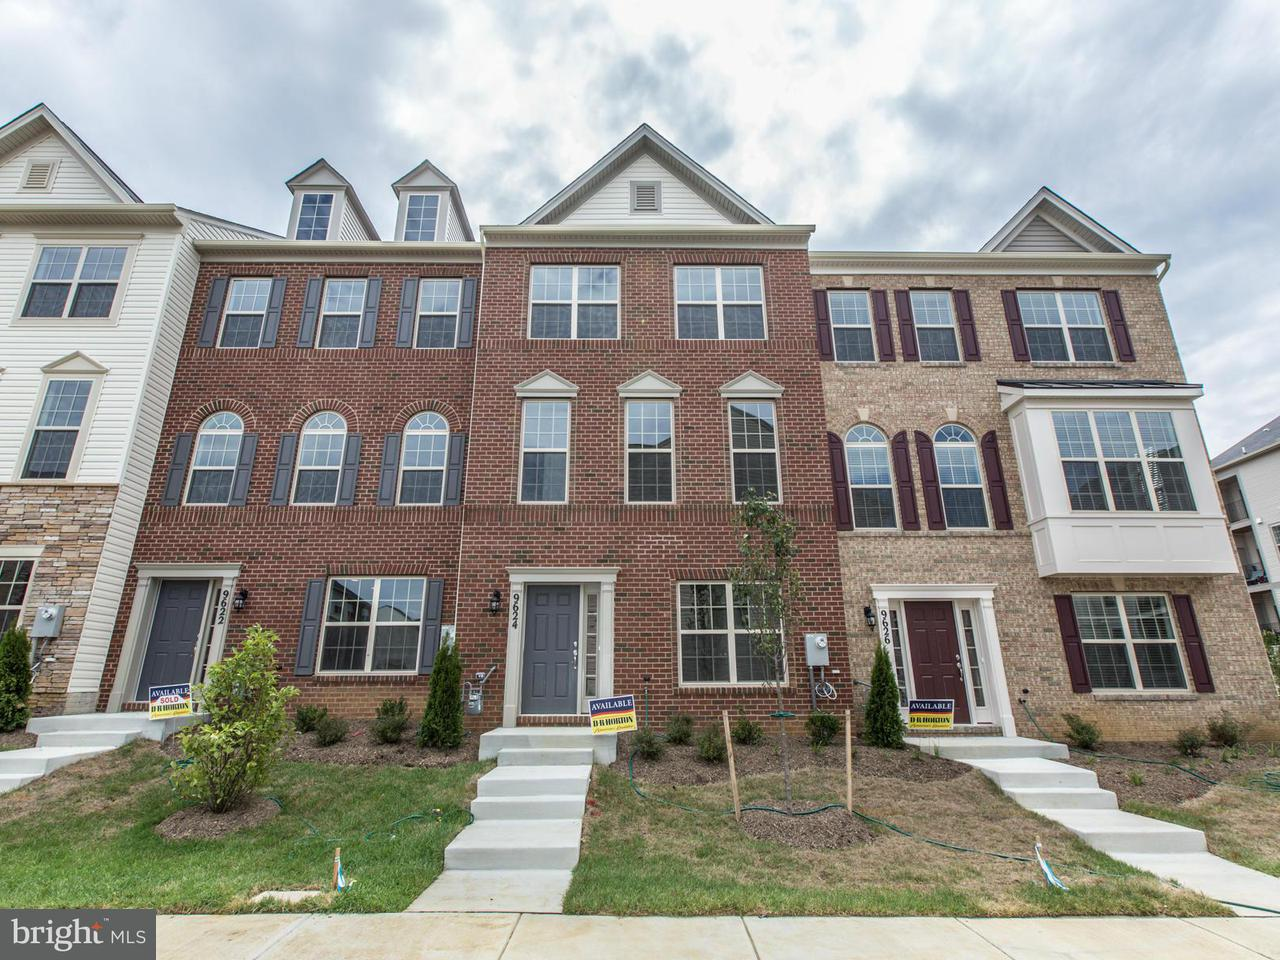 Single Family for Sale at 9412 Smithview Pl Glenarden, Maryland 20706 United States